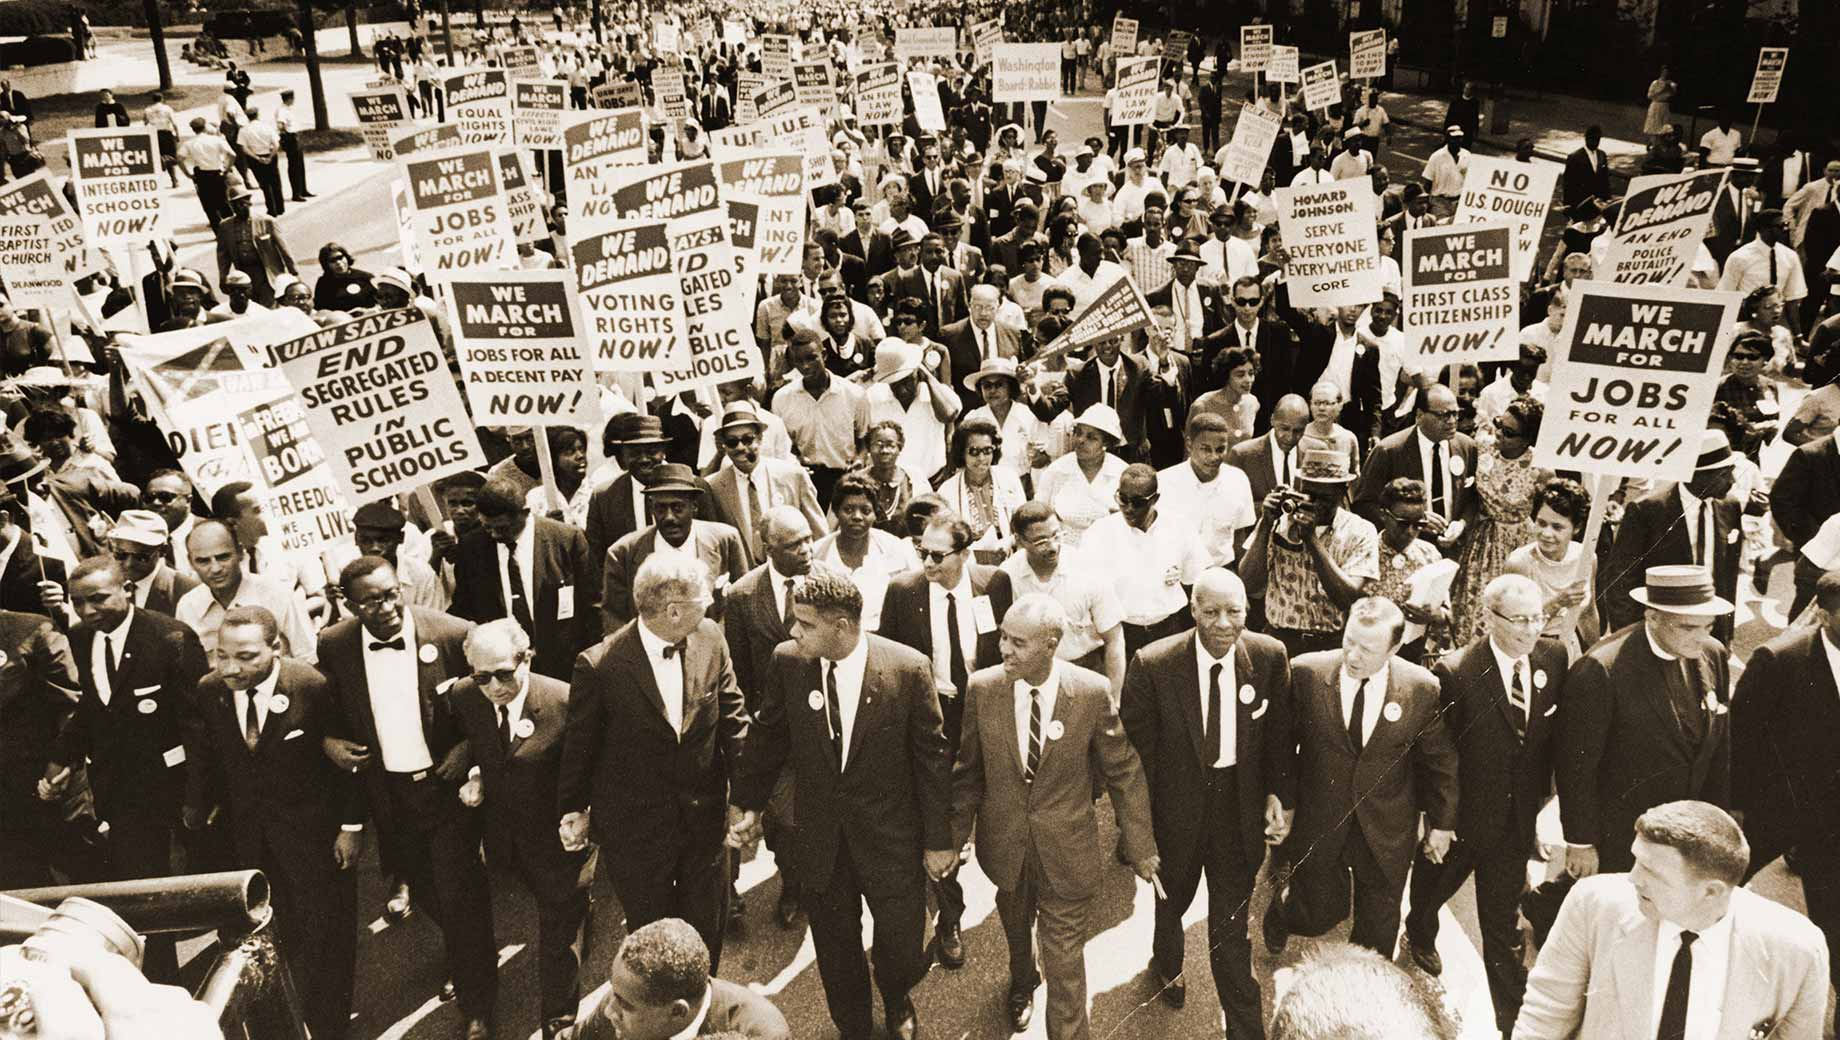 Protests Seen As Harming Civil Rights Movement In The 60s